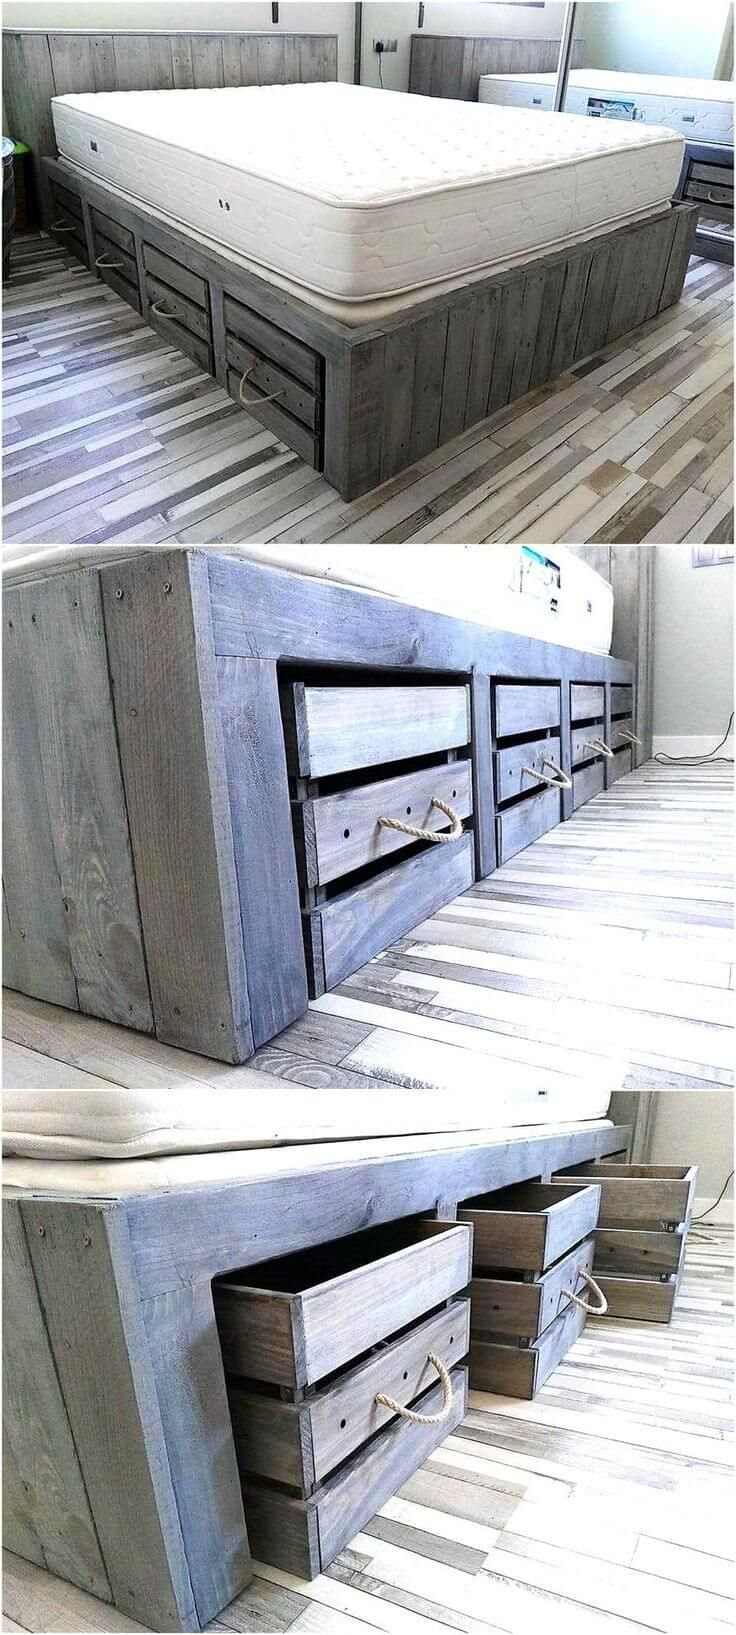 411 best Small Living-Big Dreams images on Pinterest | Small houses ...